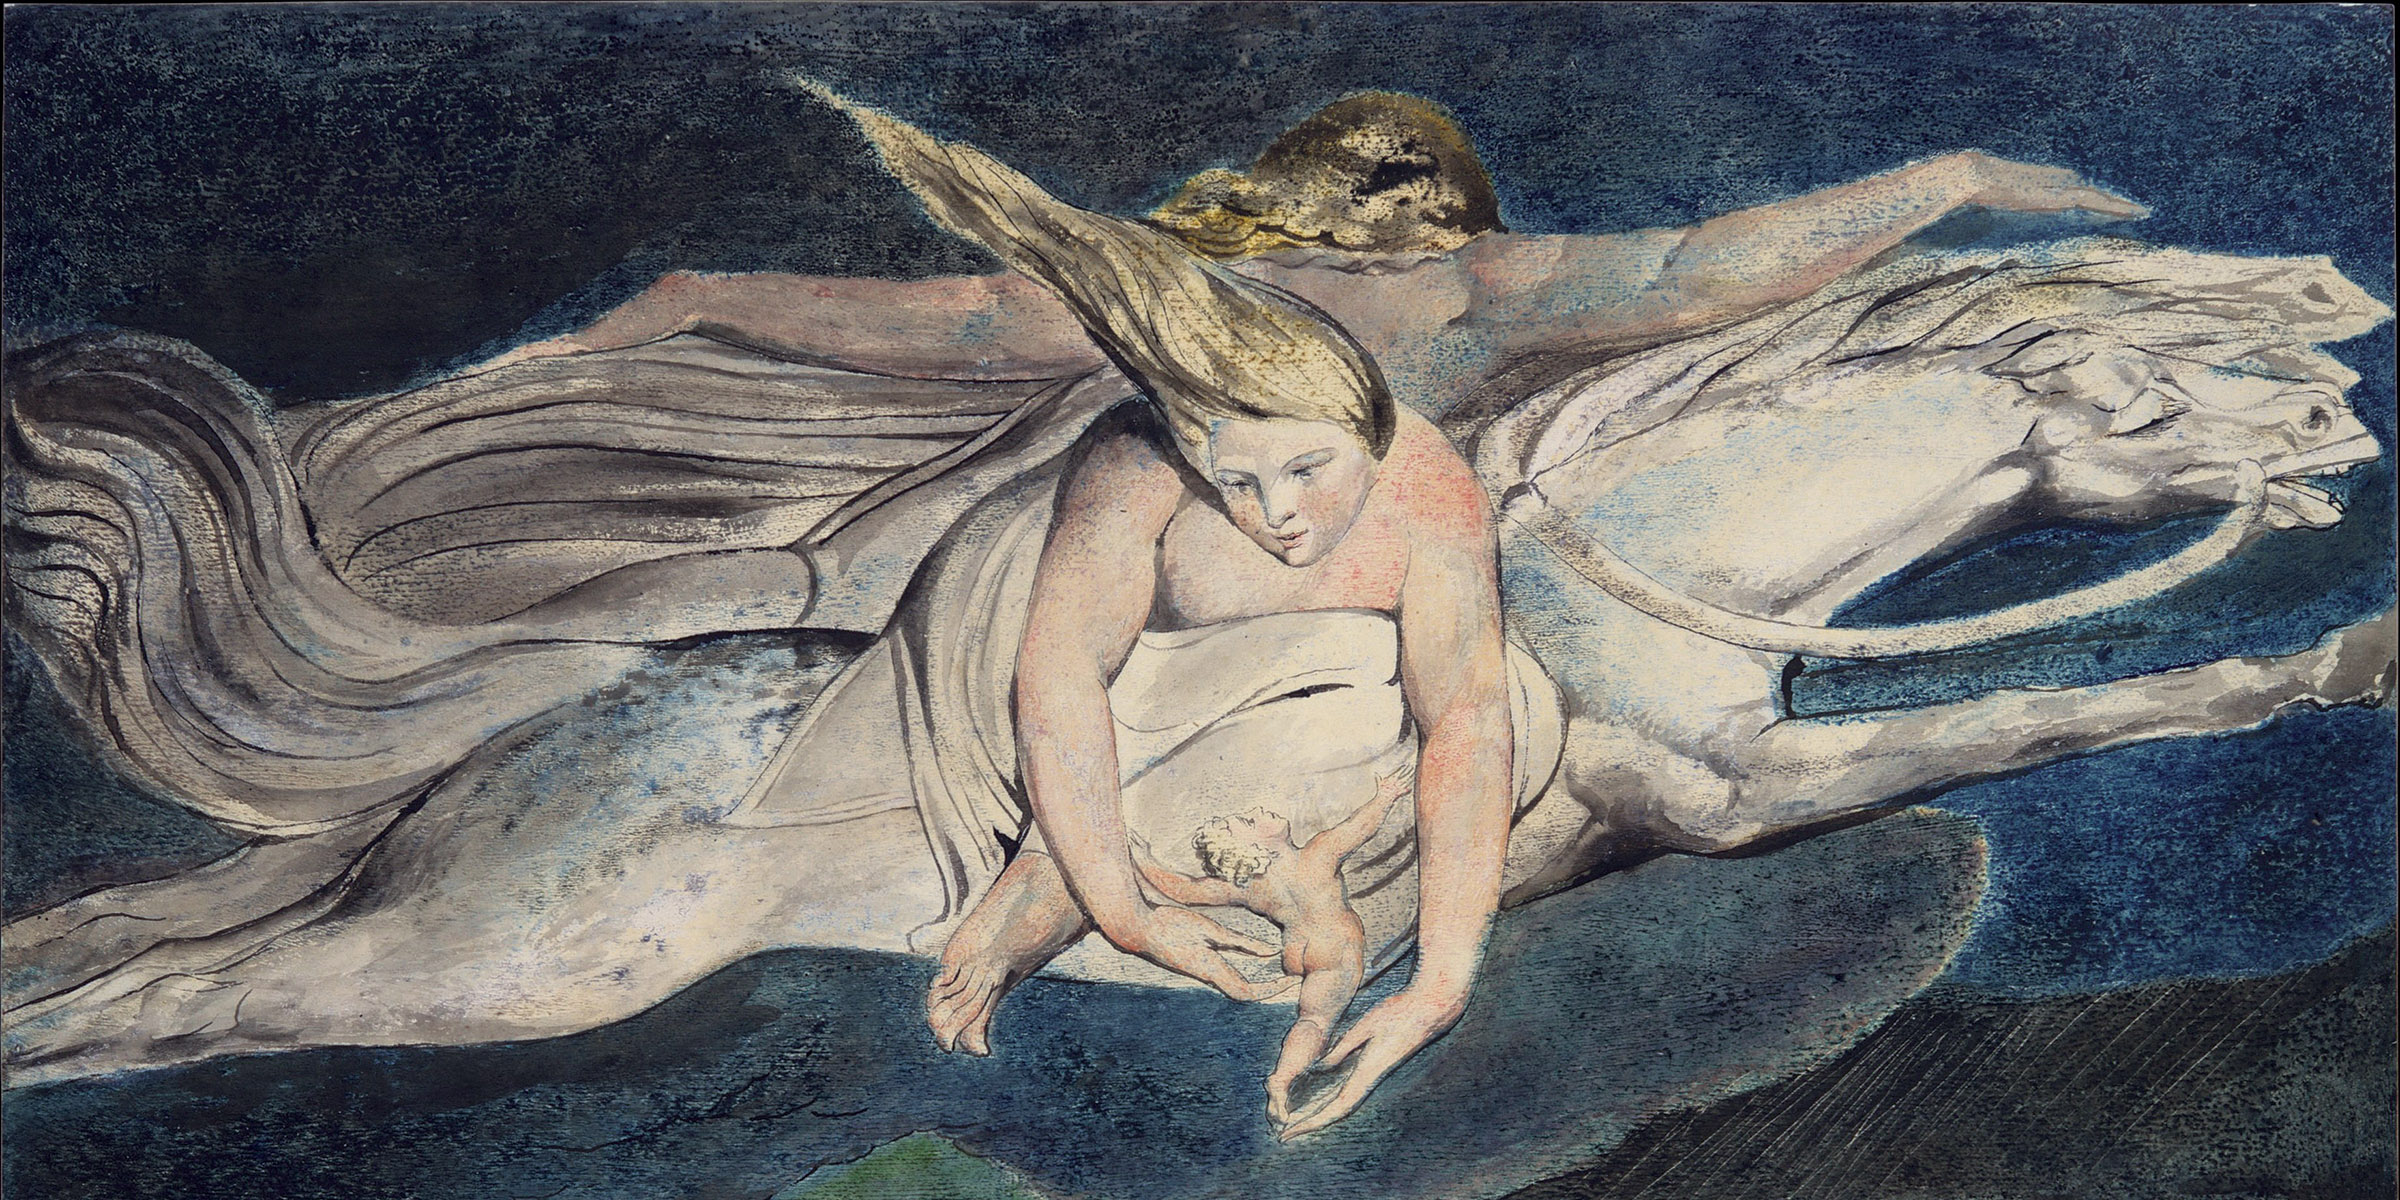 Pity, by William Blake, c. 1795.